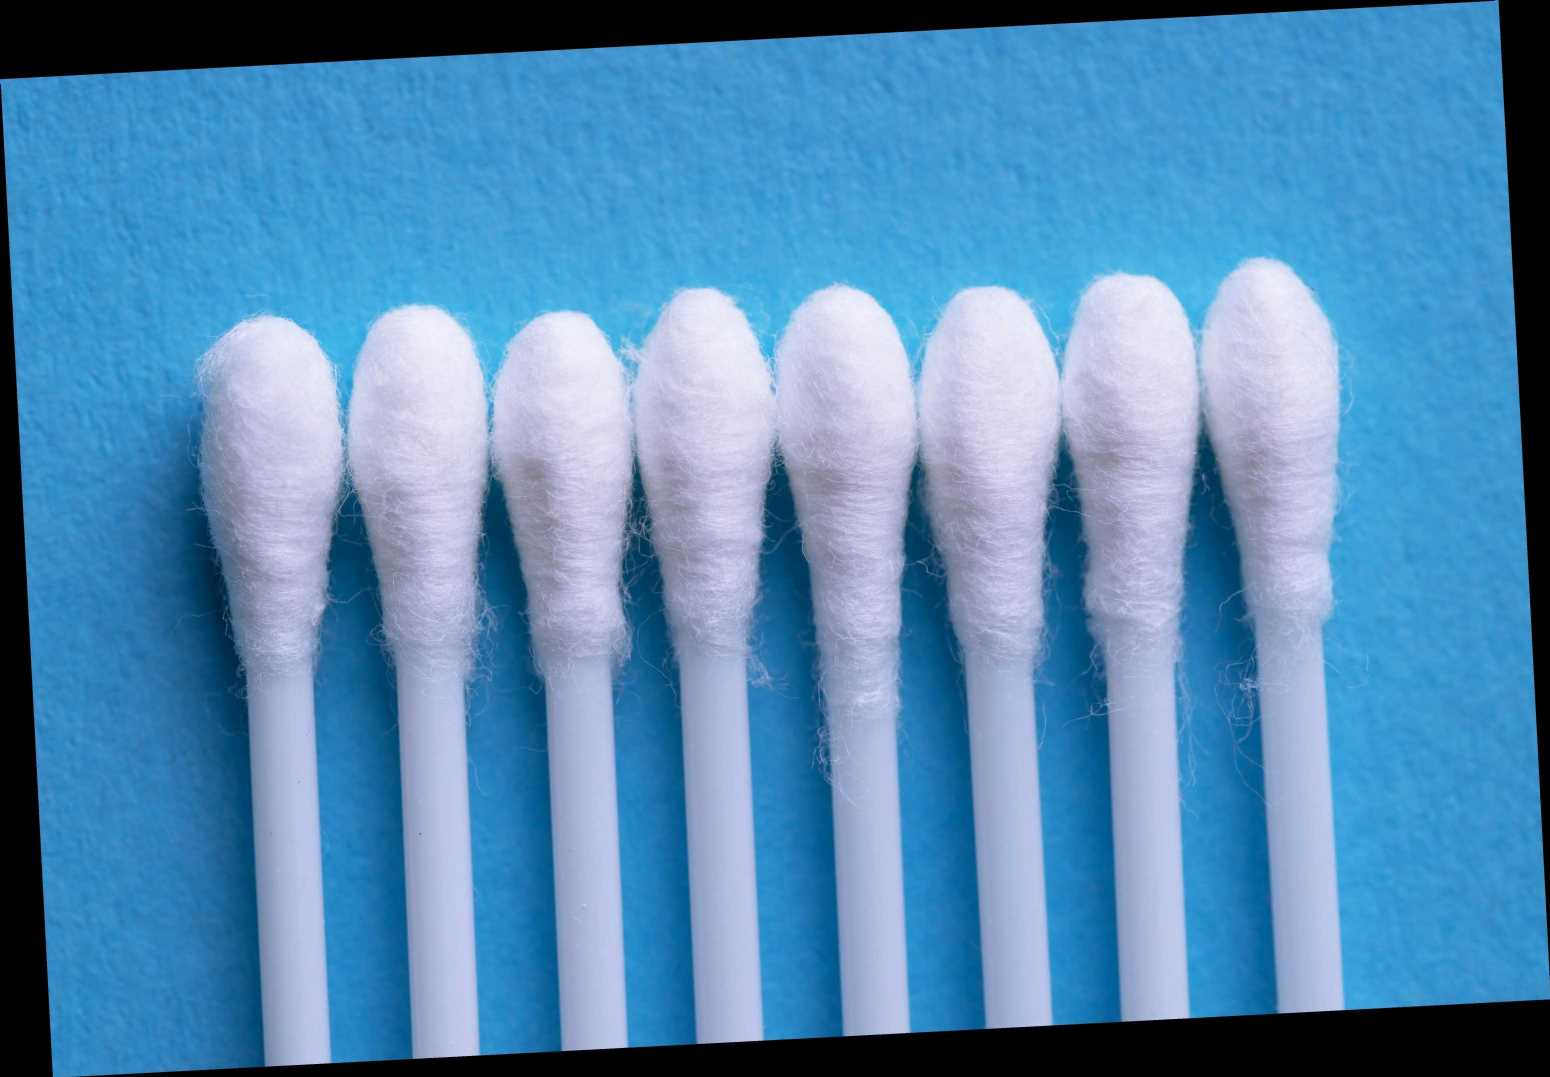 Plastic cotton buds, coffee stirrers and straws banned from today